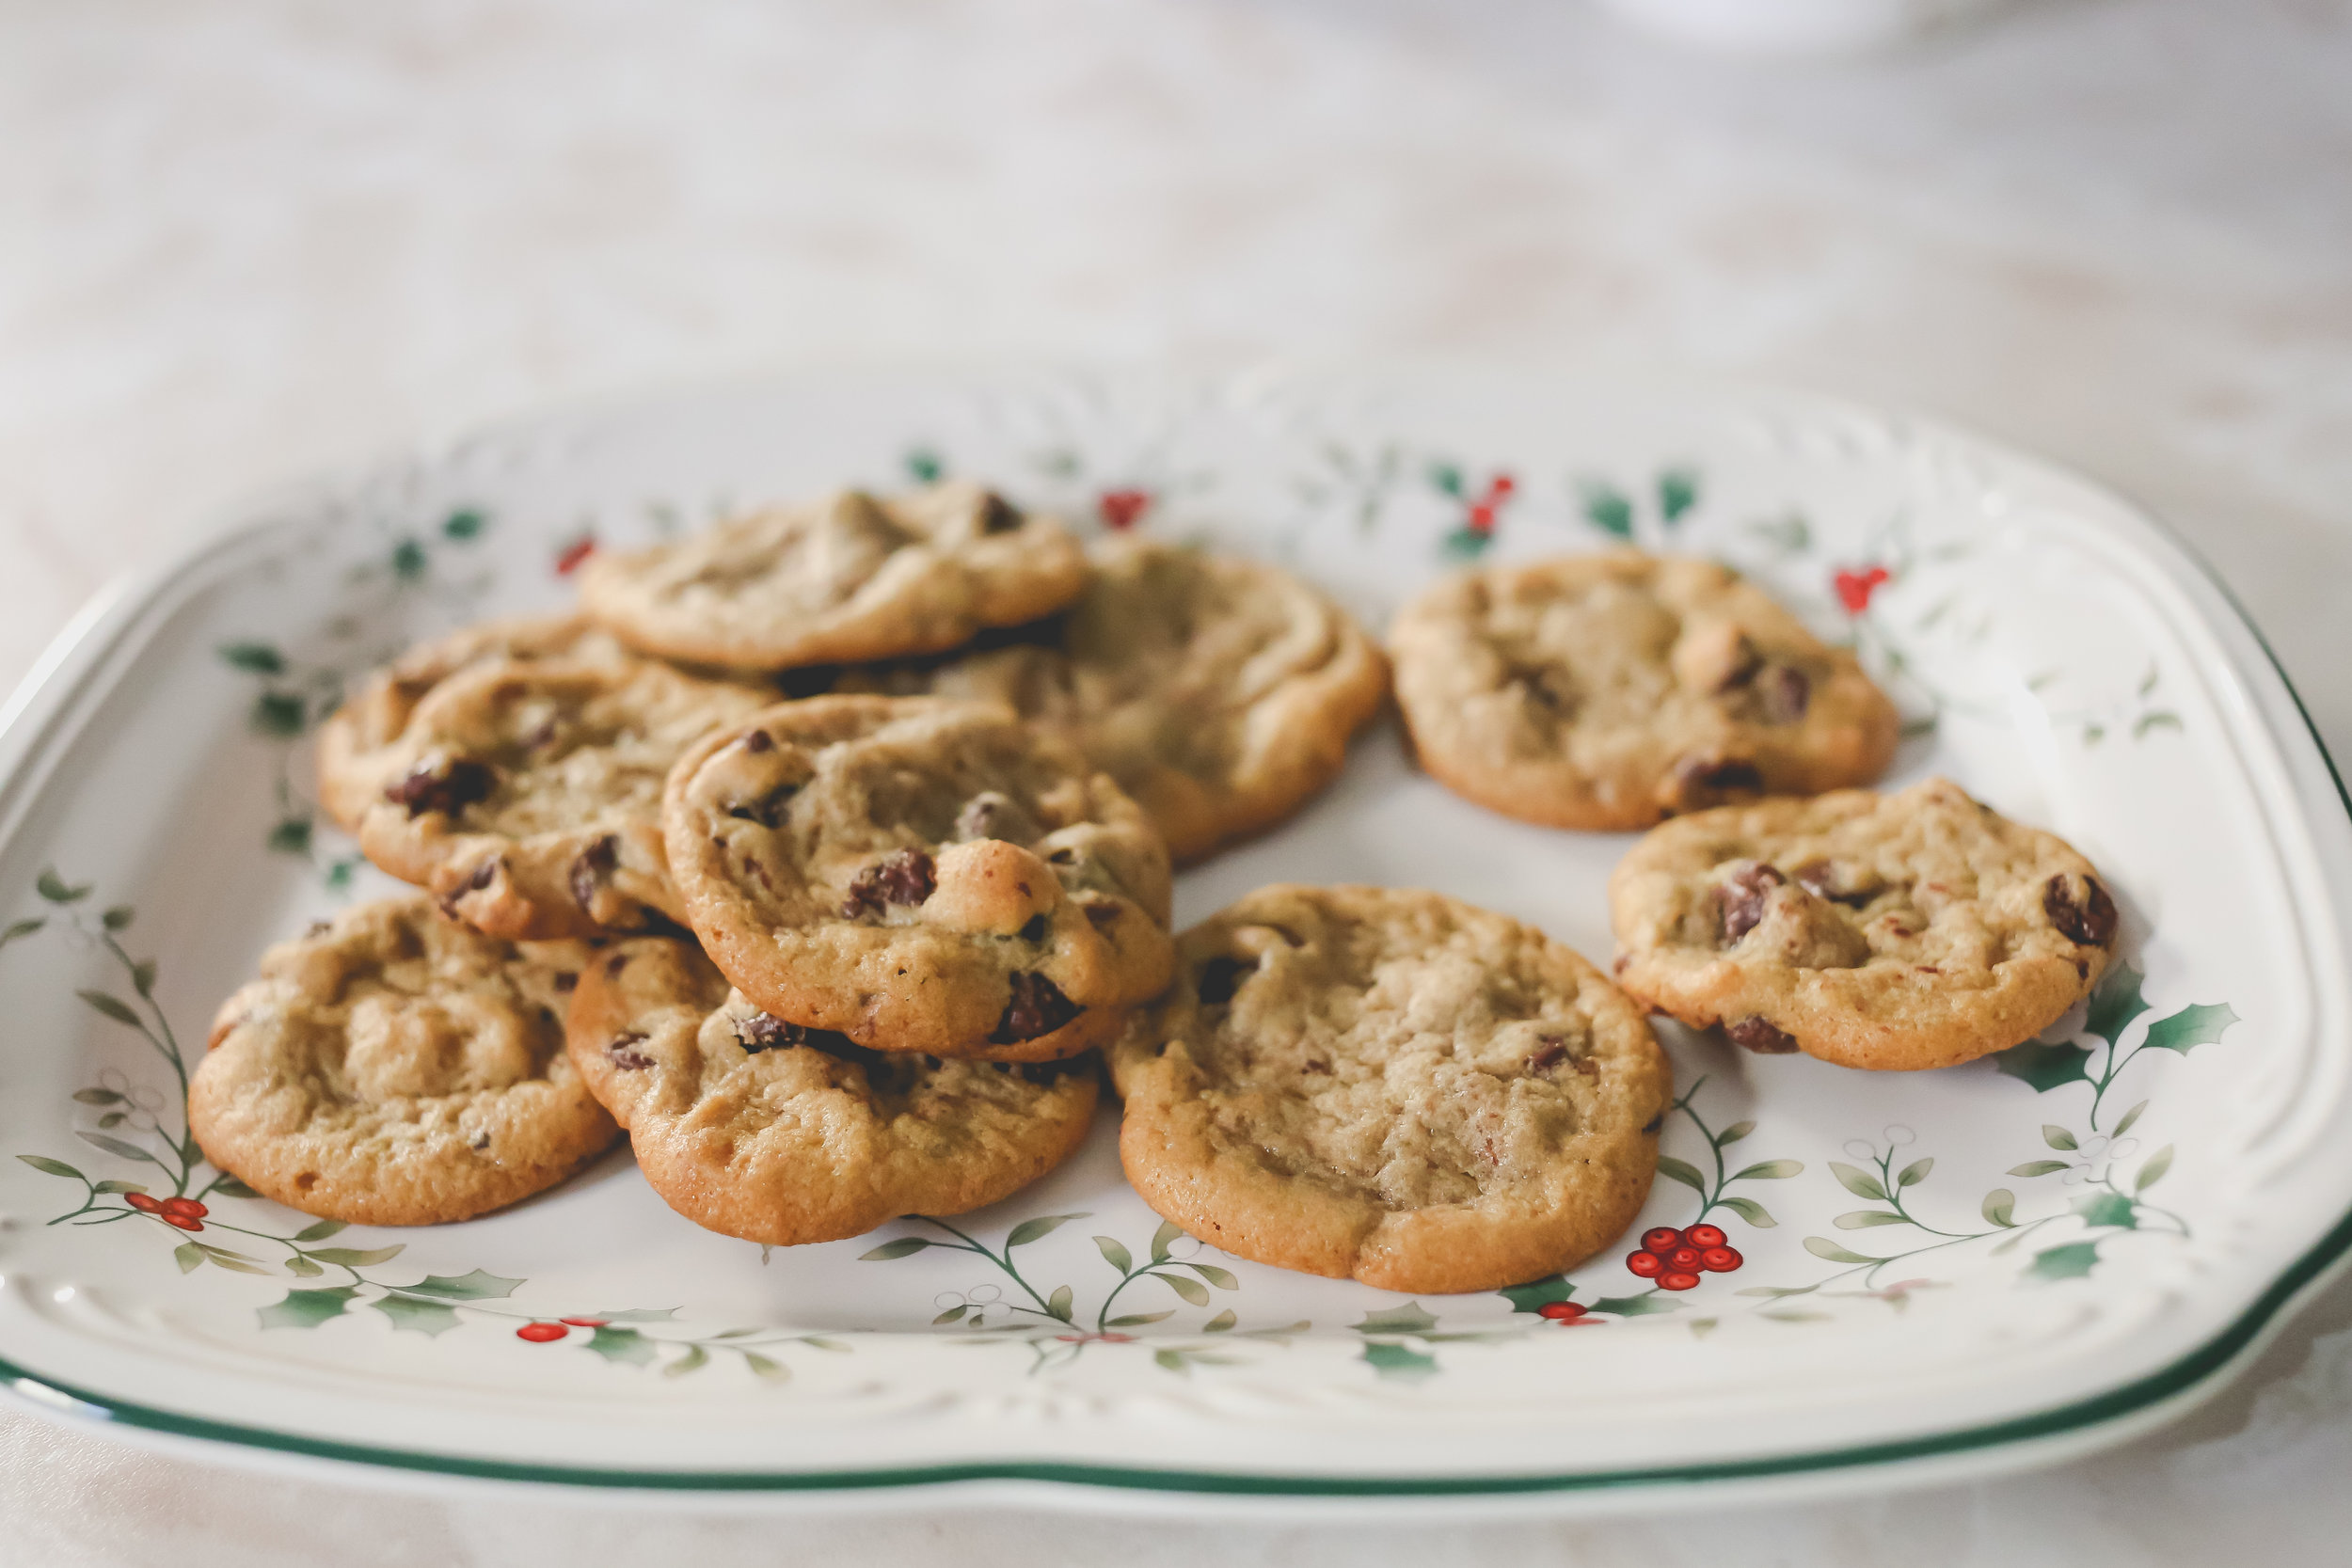 A plate of chocolate chip Christmas cookies, made during a family photography session by Jen Grima of Staten Island, New York.